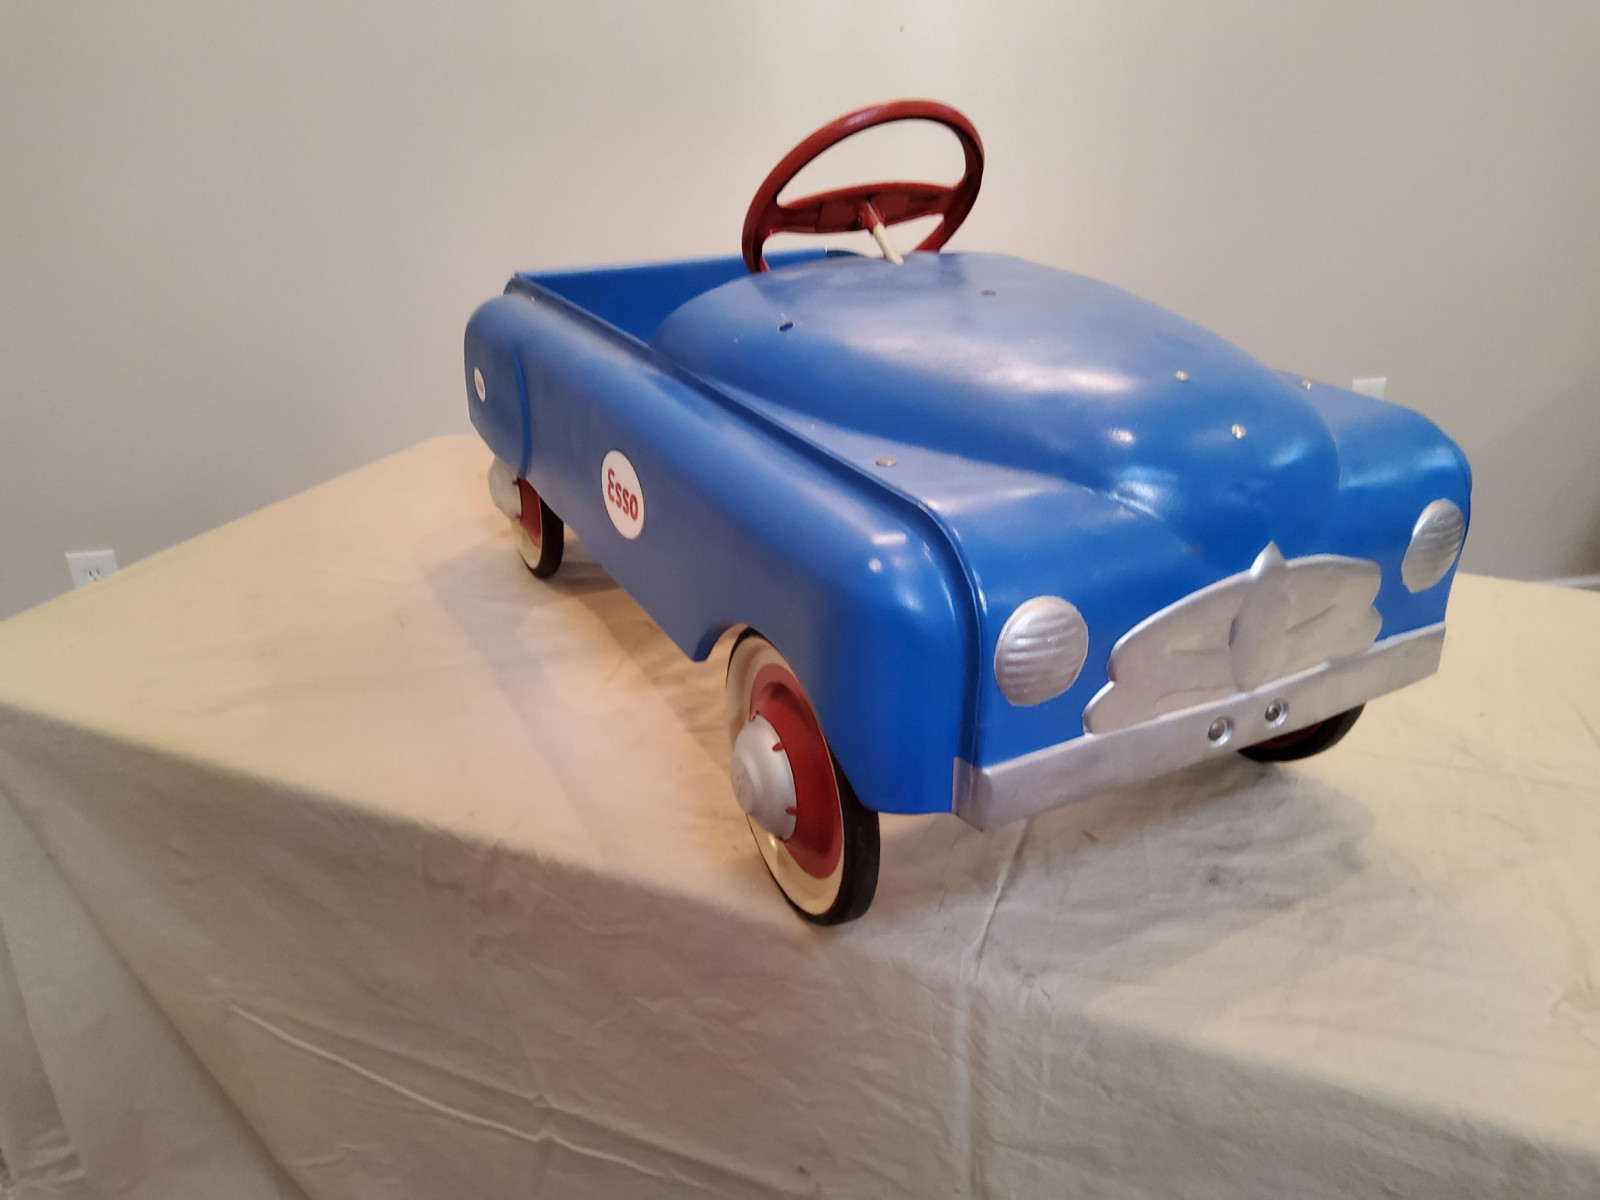 1950 BMC Smooth Side ESSO theme Pedal Car - Image 4